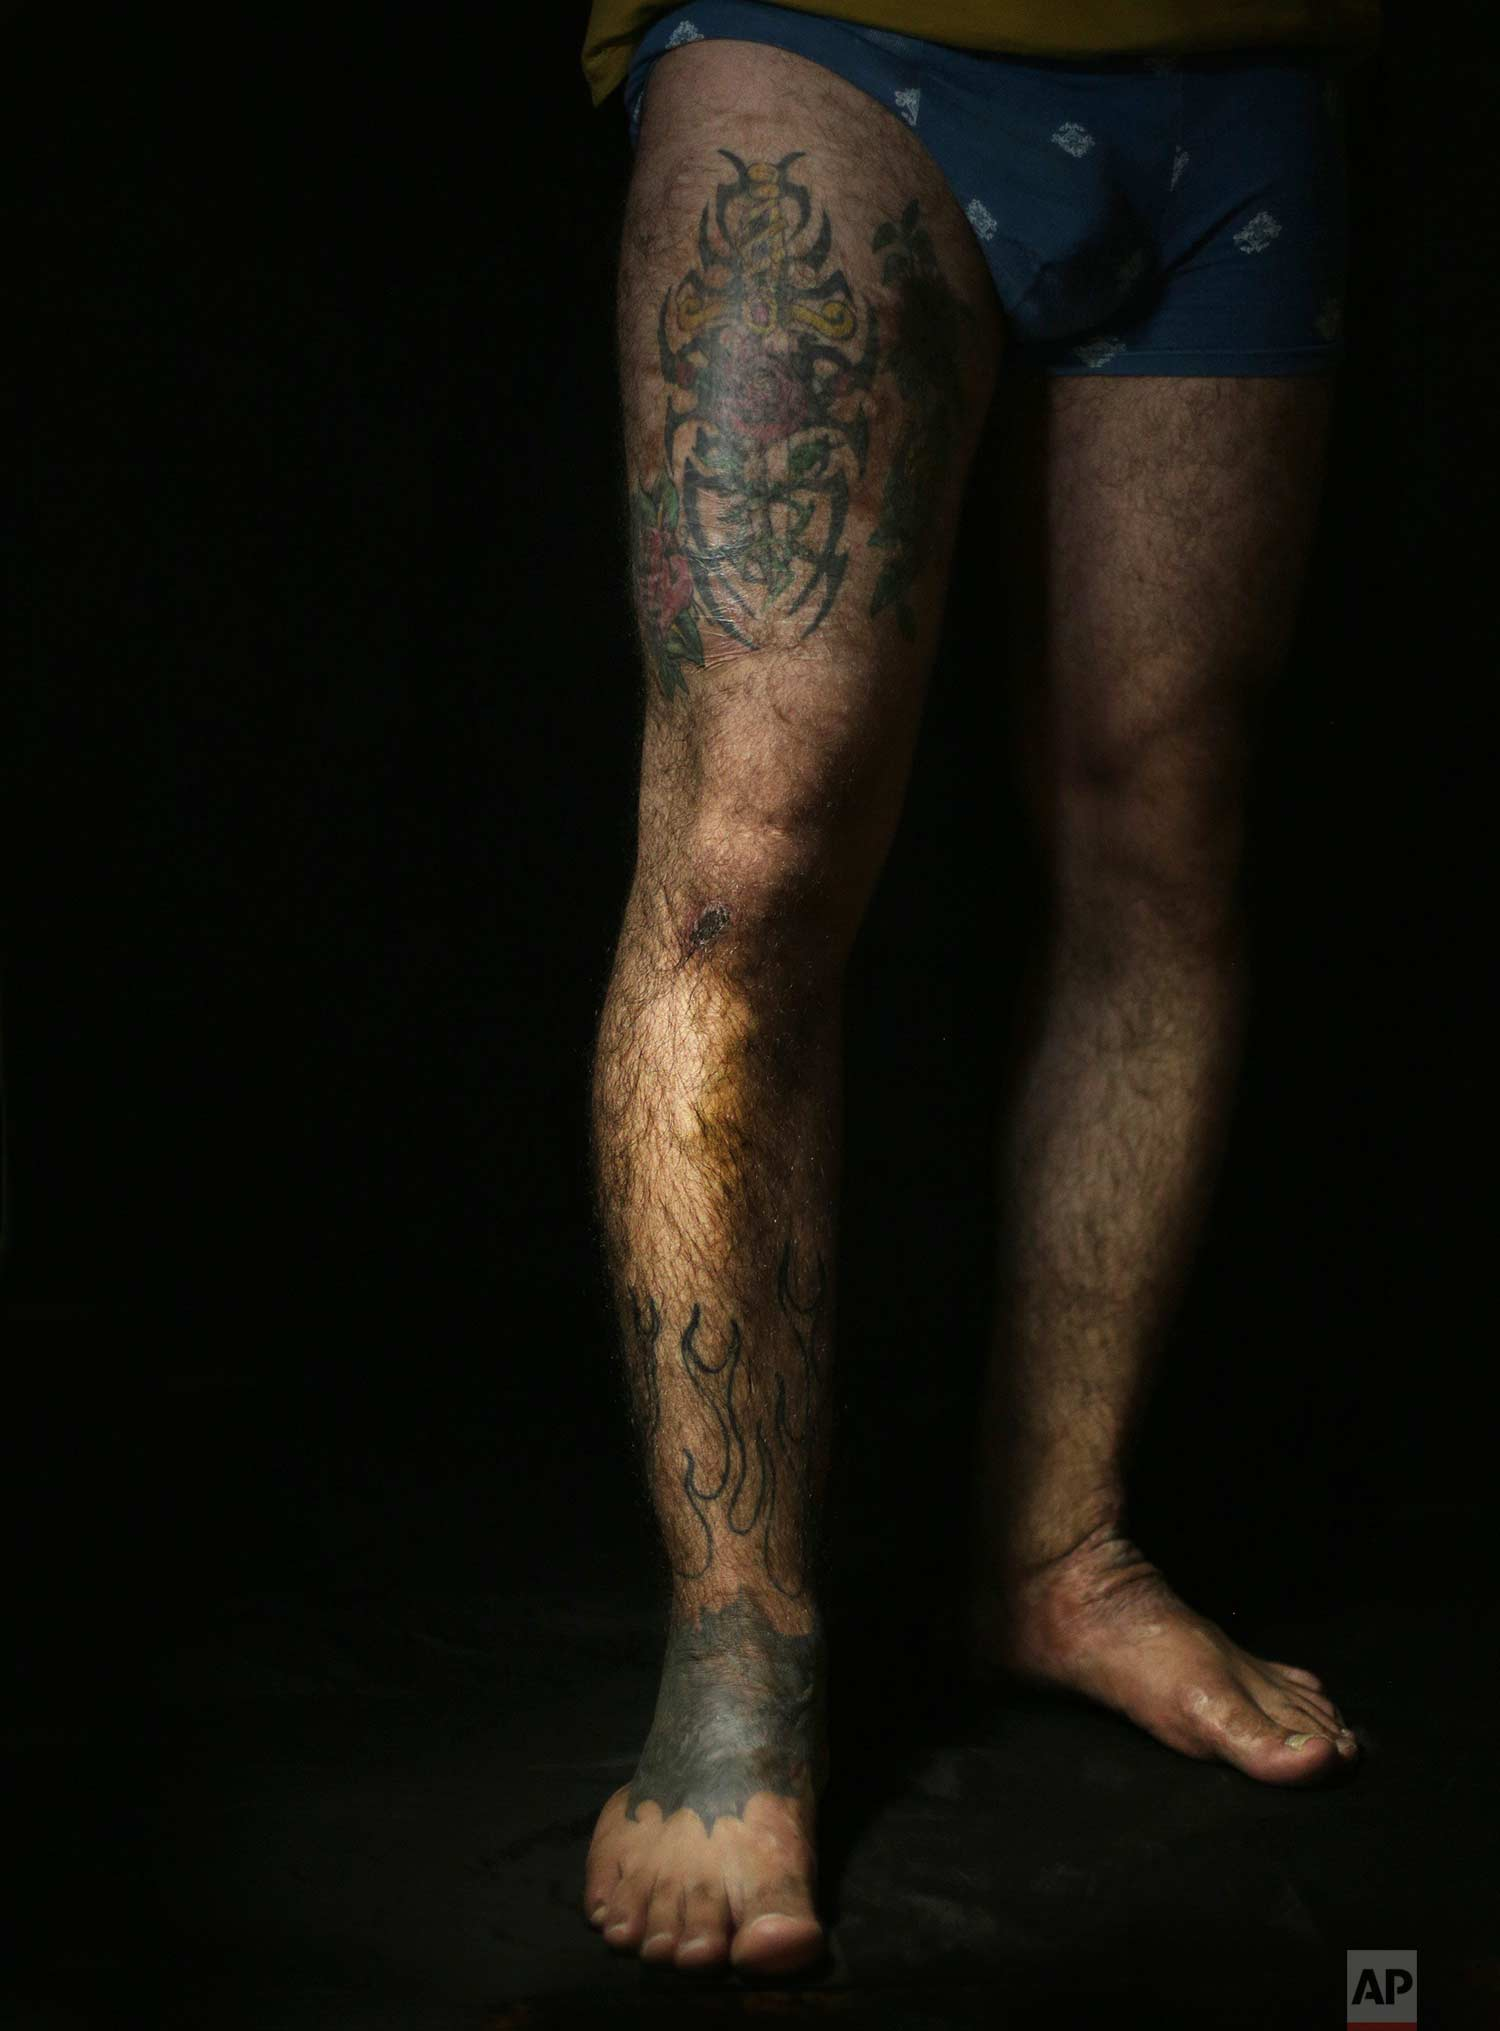 "In this Wednesday. Oct. 24, 2018, photo, Iraqi soldier Saad Khudeir displays tattoos on his leg to cover scars of the burns he suffered in a car bombing, in Baghdad, Iraq. ""People stared at me and sometime I felt they were scared of me at the swimming pool,"" Khudeir, 36, told The Associated Press, recalling how he decided to cover up his scars to for a better appearance. (AP Photo/Hadi Mizban)"